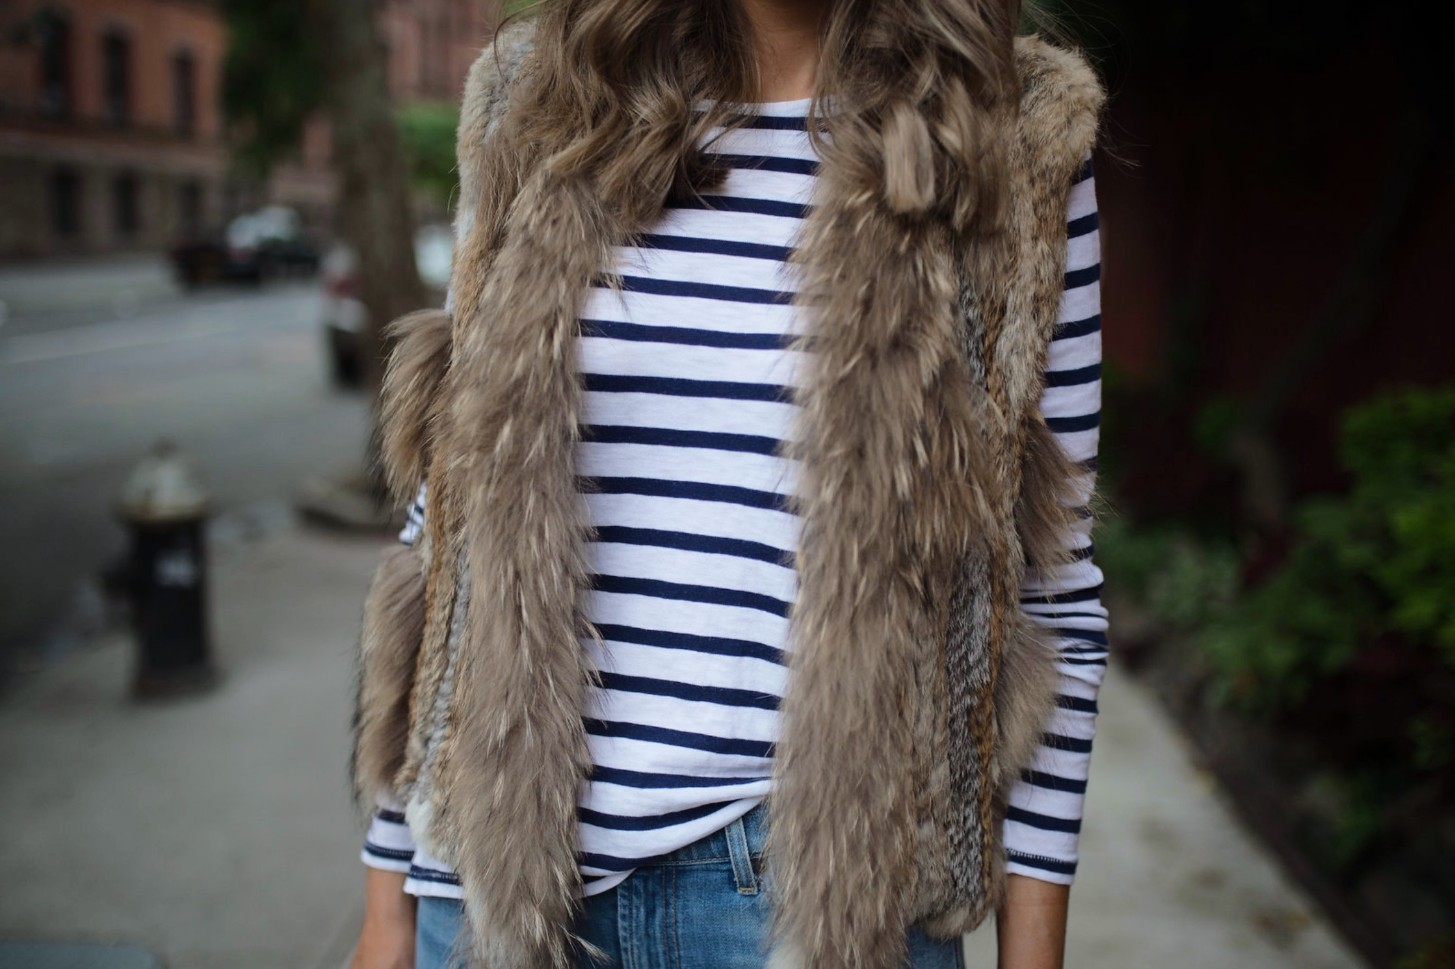 spring weekend outfit idea fur vest navy stripe jcrew top blue ripped jeans 7 for all mankind nude heels blog new york style elixir fashion blogger lauren slade 5